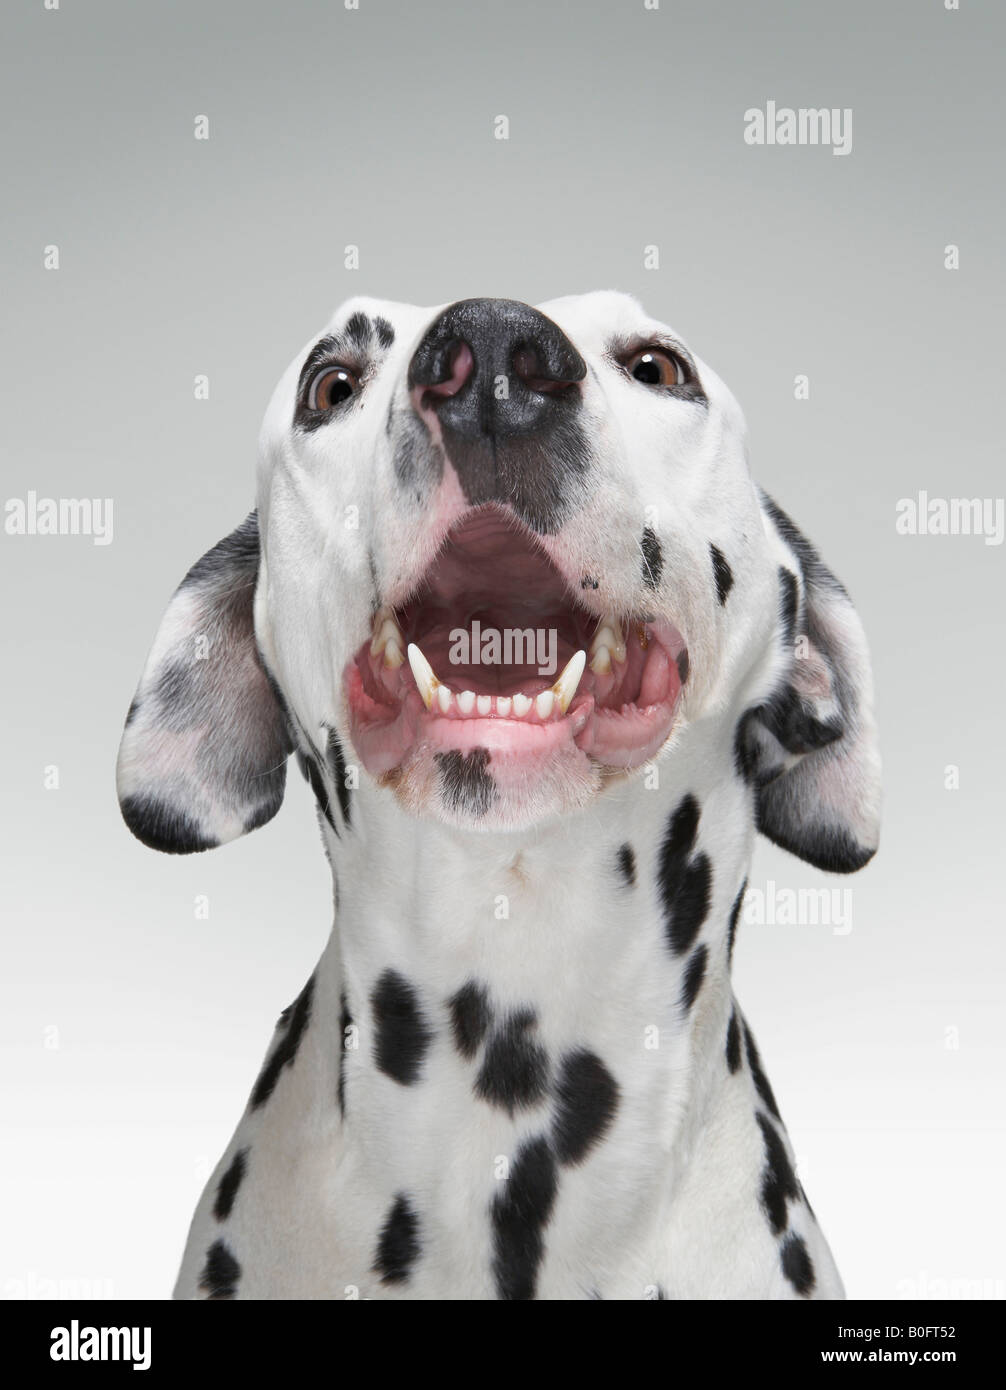 Close up of a Dalmatian dog - Stock Image